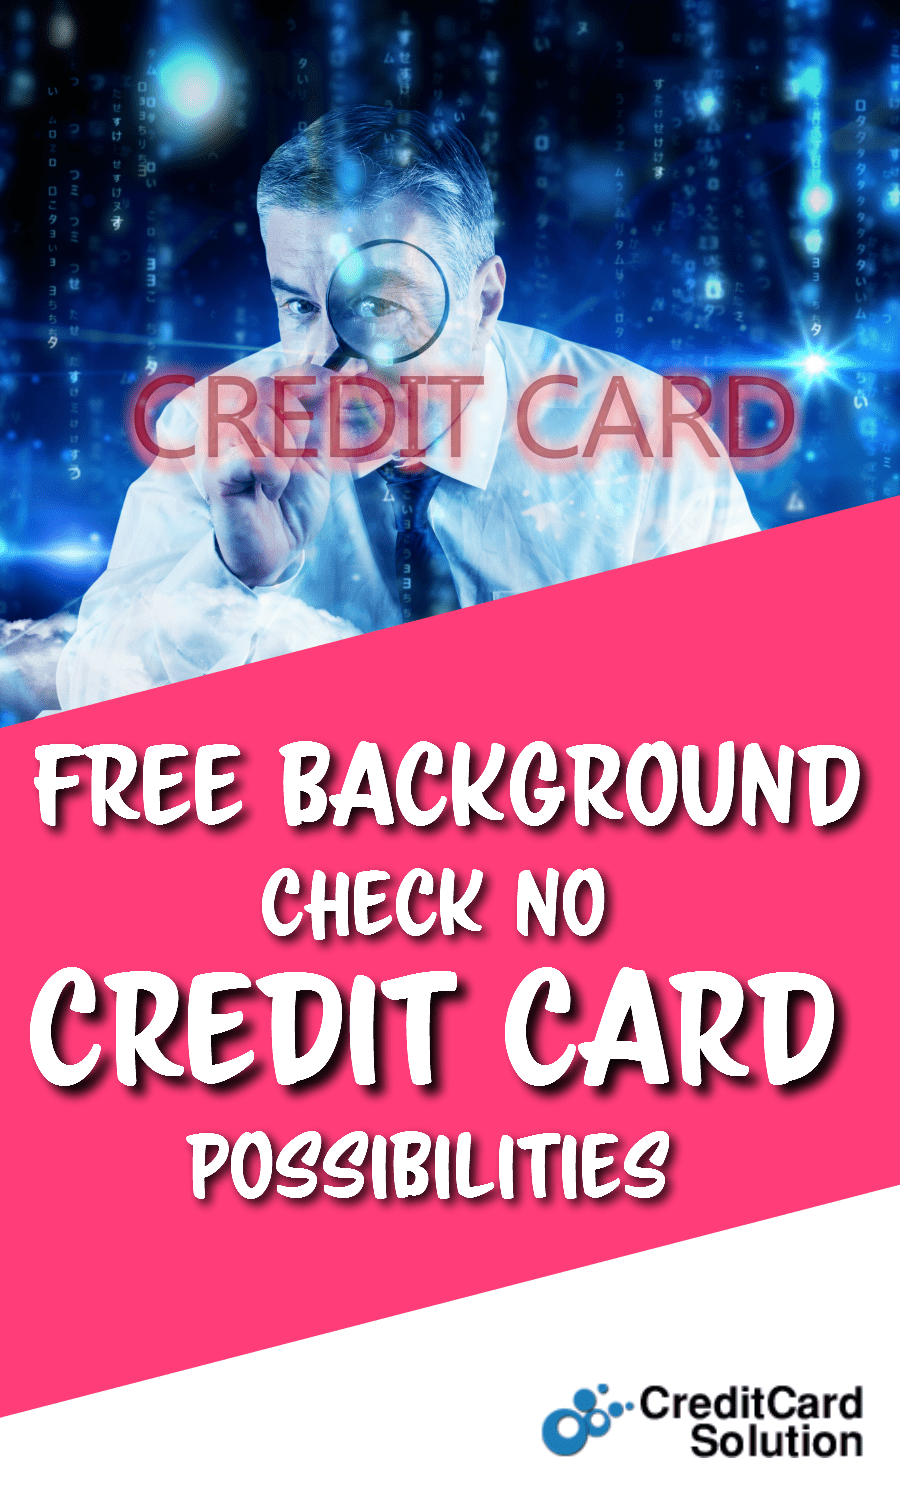 Free Background Check No Credit Card Possibilities